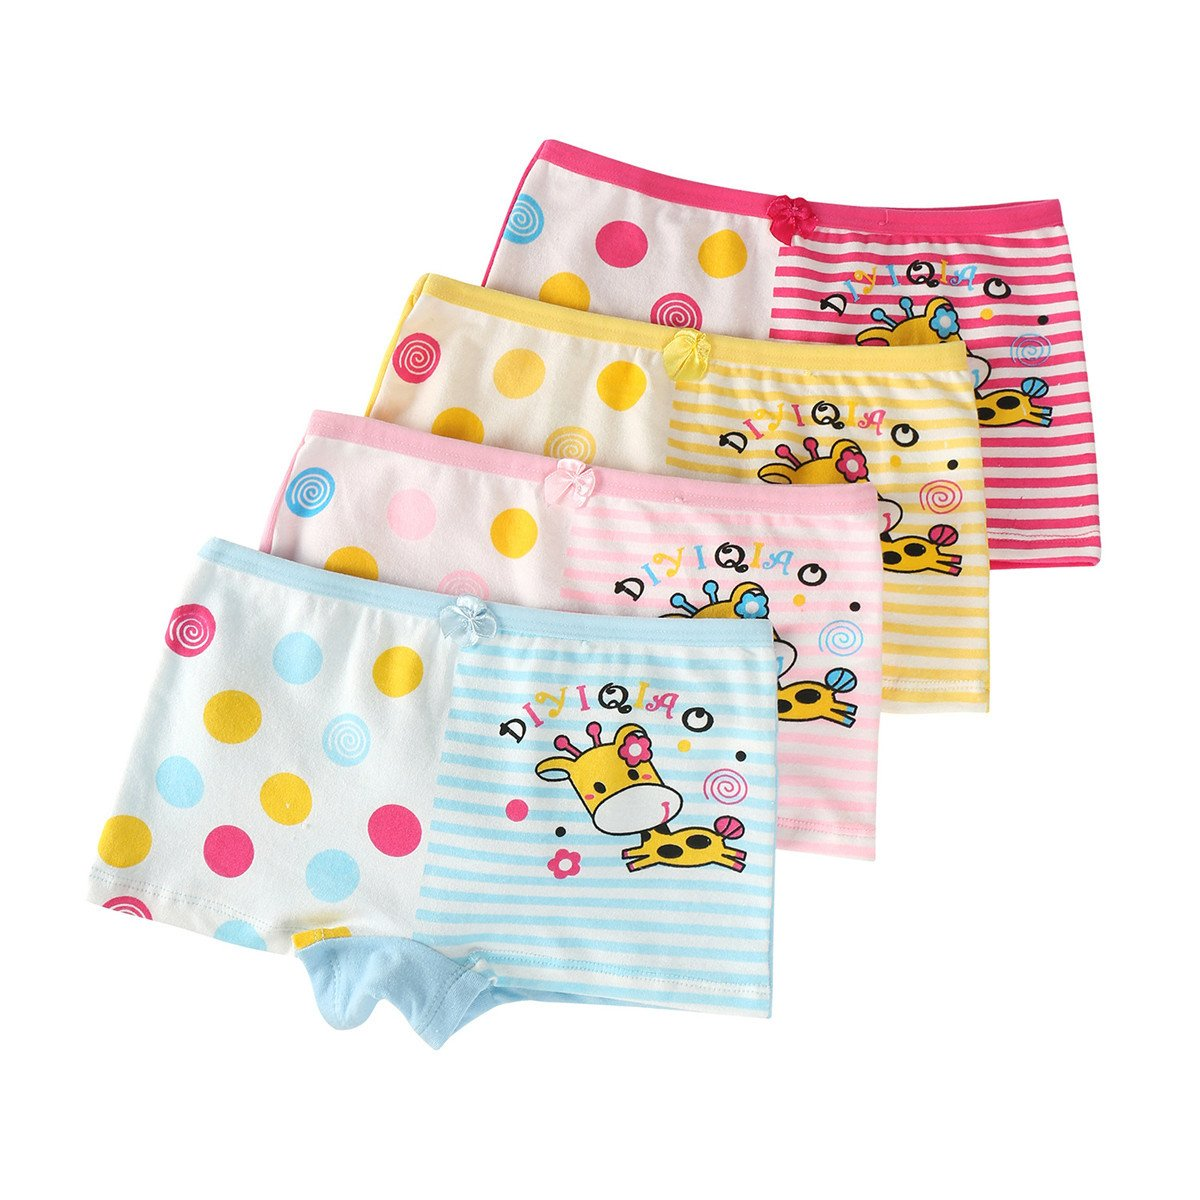 FAIRYRAIN Little Girls Kids Baby Toddler 4Pcs Cartoon Print Boyshort Underwear Boxers Briefs Panties